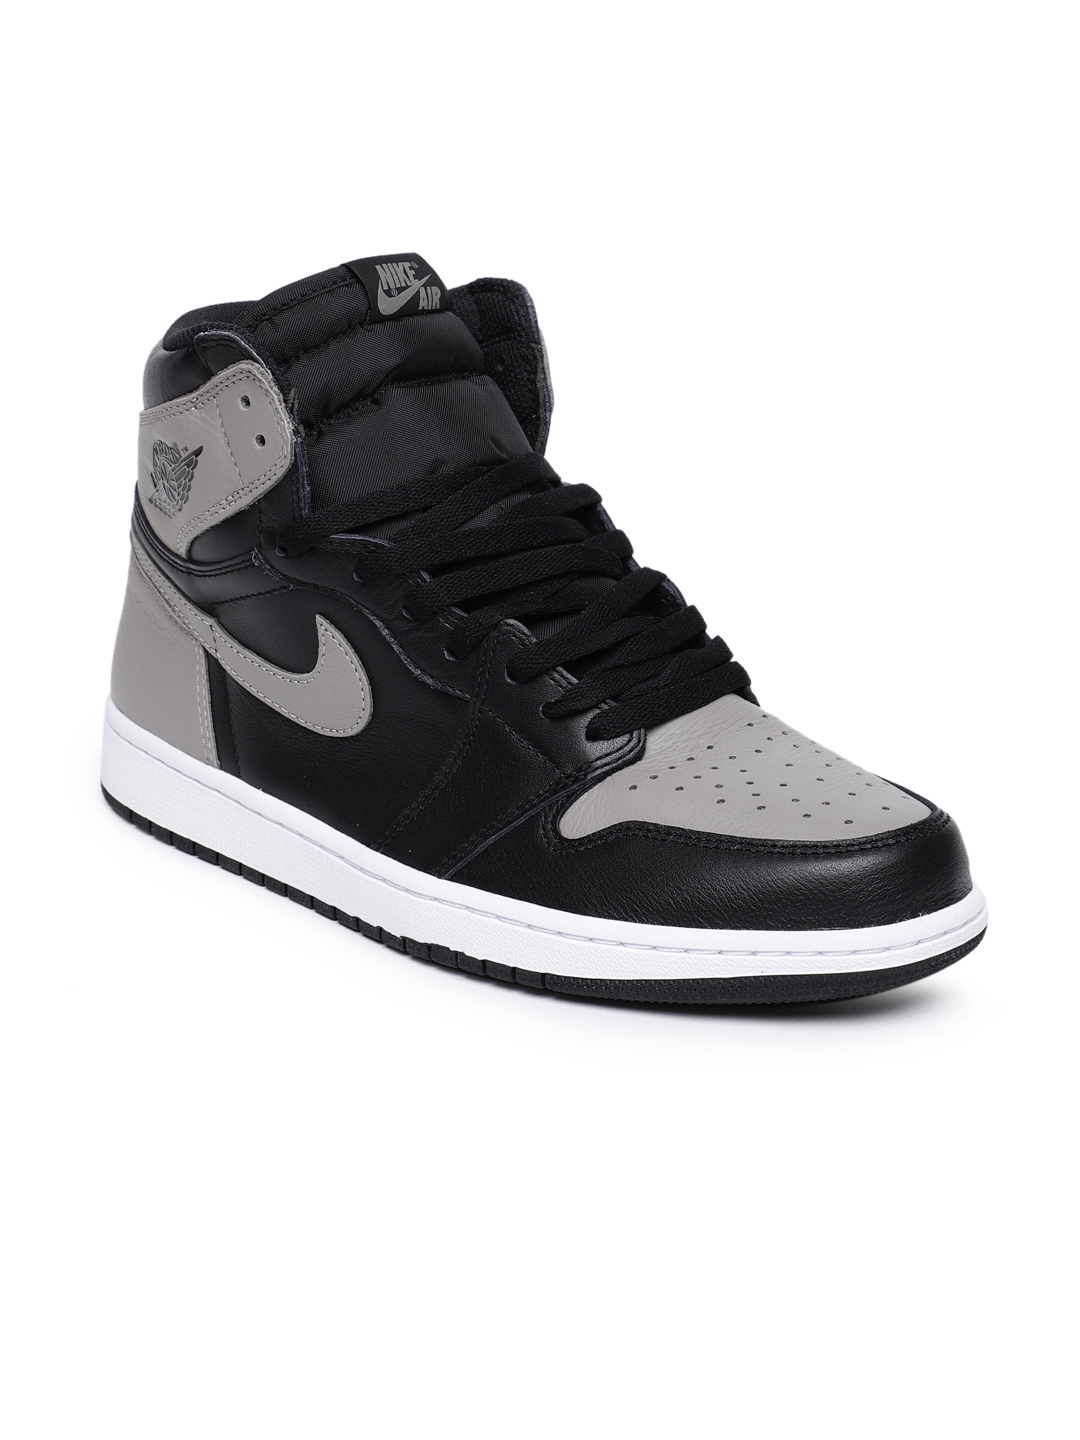 sale retailer 64488 c2f3f Nike Men Black & Grey Air Jordan 1 Retro High OG Leather Basketball Shoes